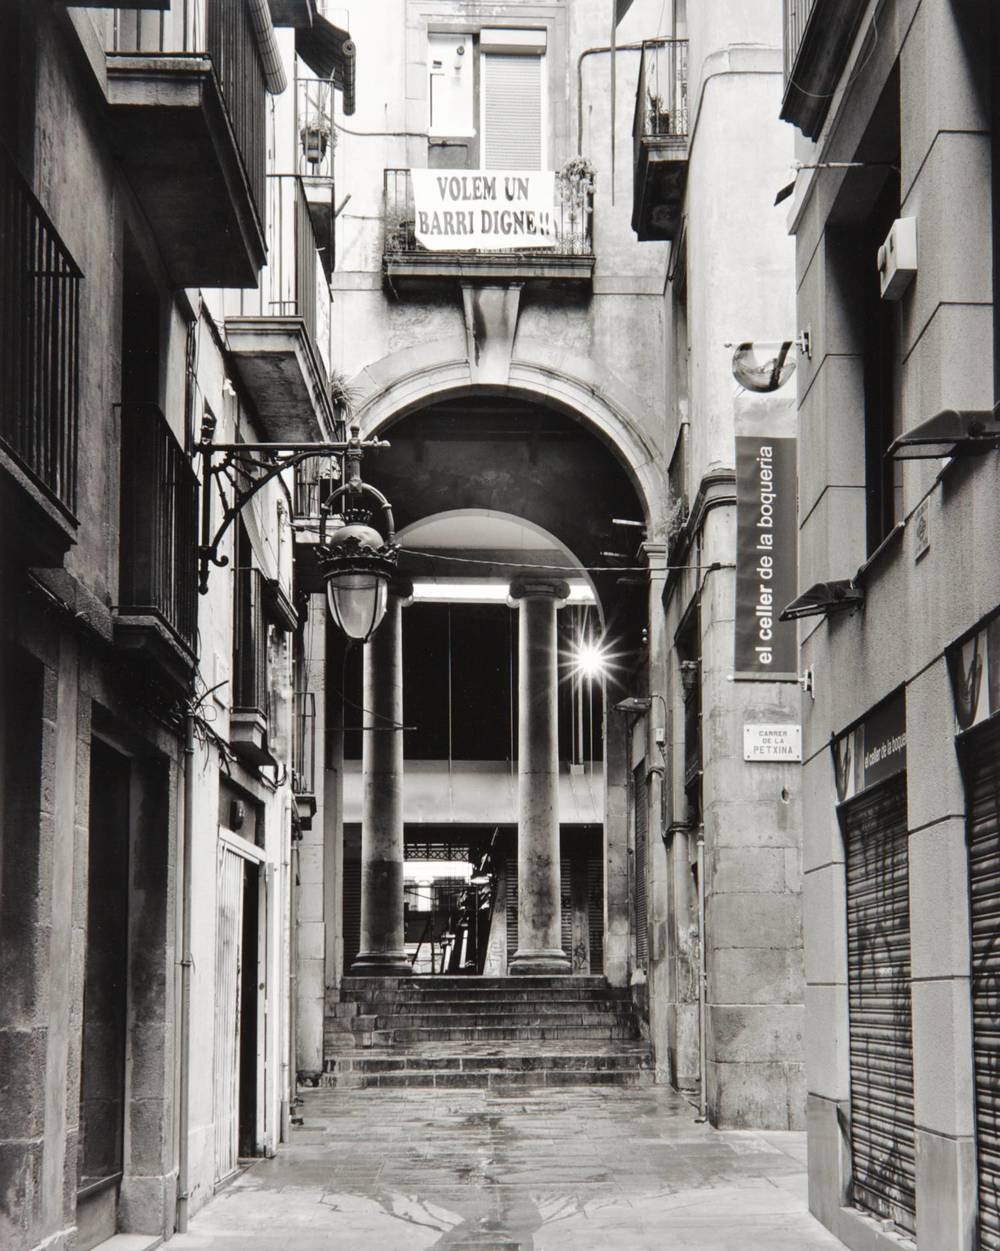 Passage in Barcelona (Spain)